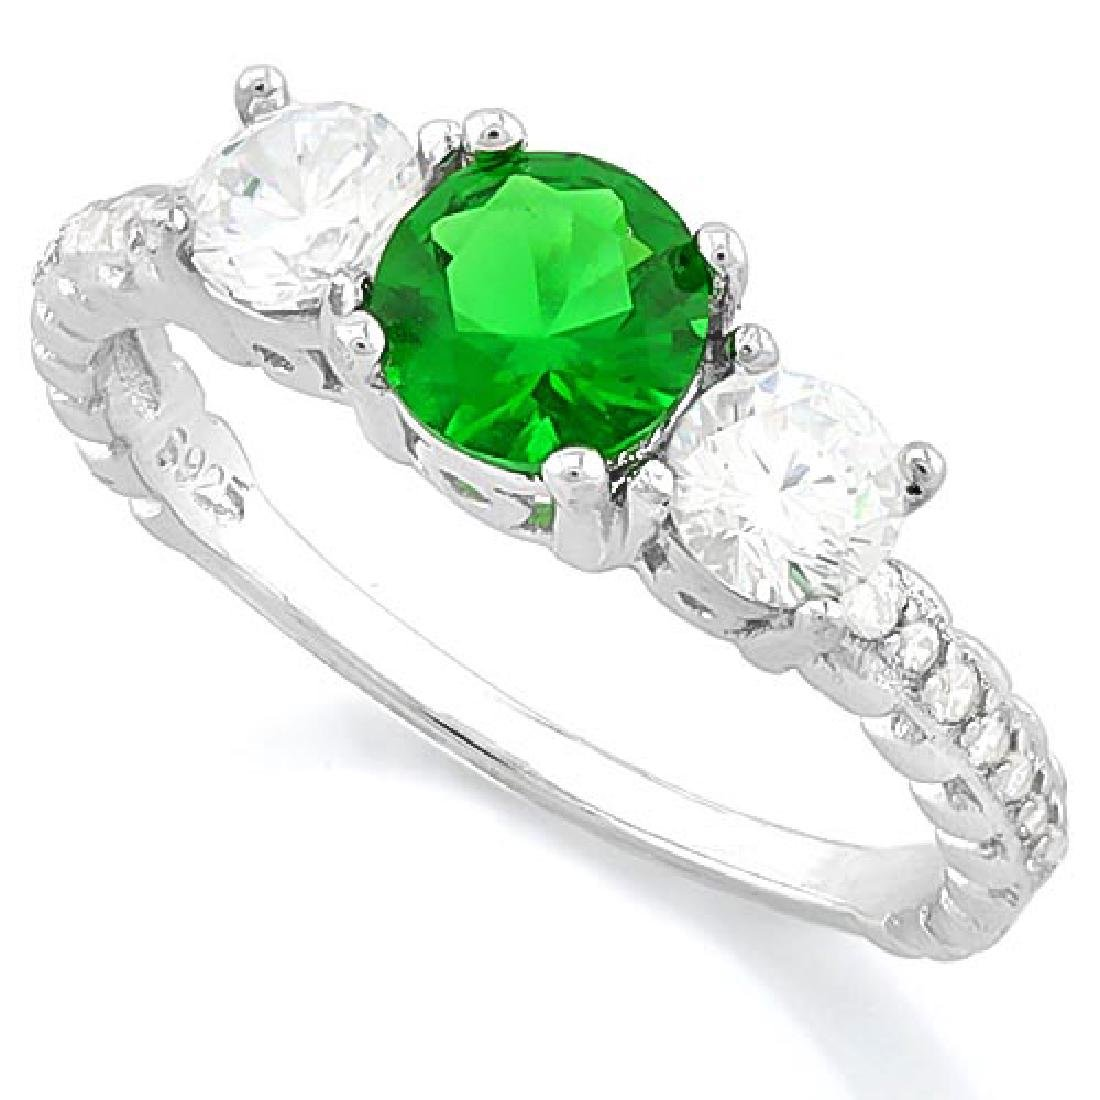 CREATED EMERALD 925 STERLING SILVER HALO RING